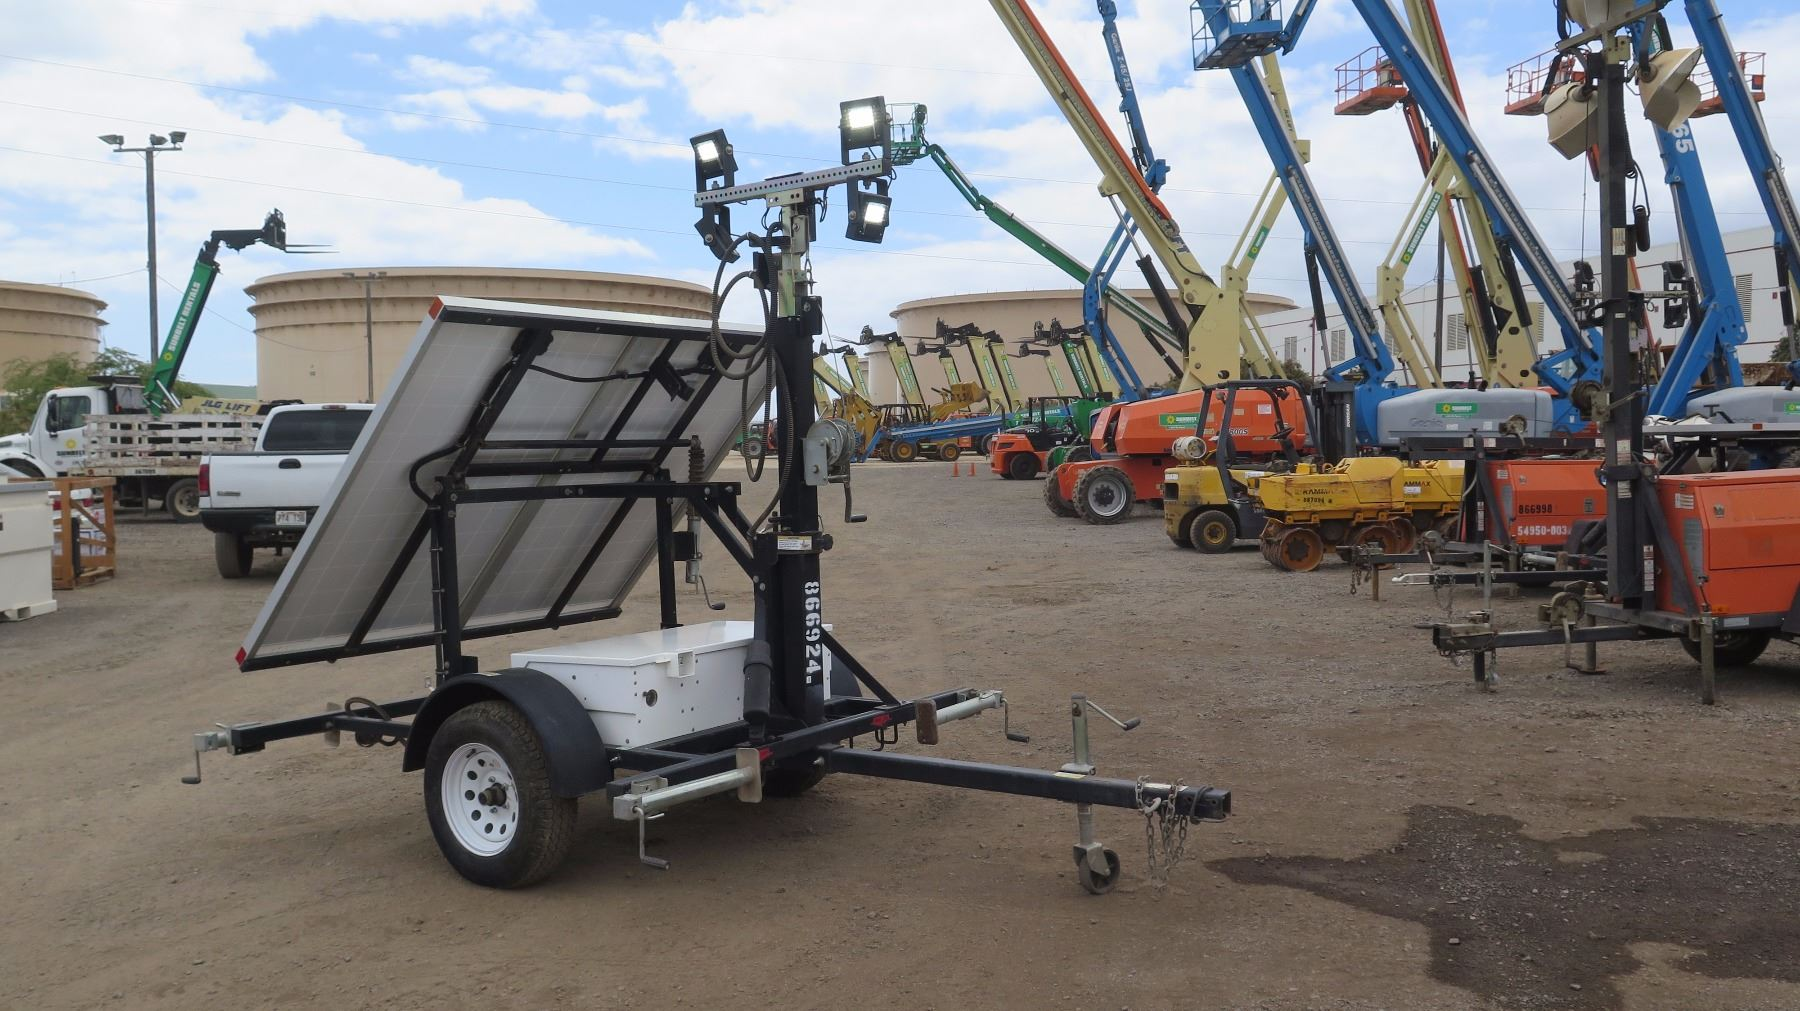 2012 Wanco Wlts Mma4 Solar Light Tower Charges All Day